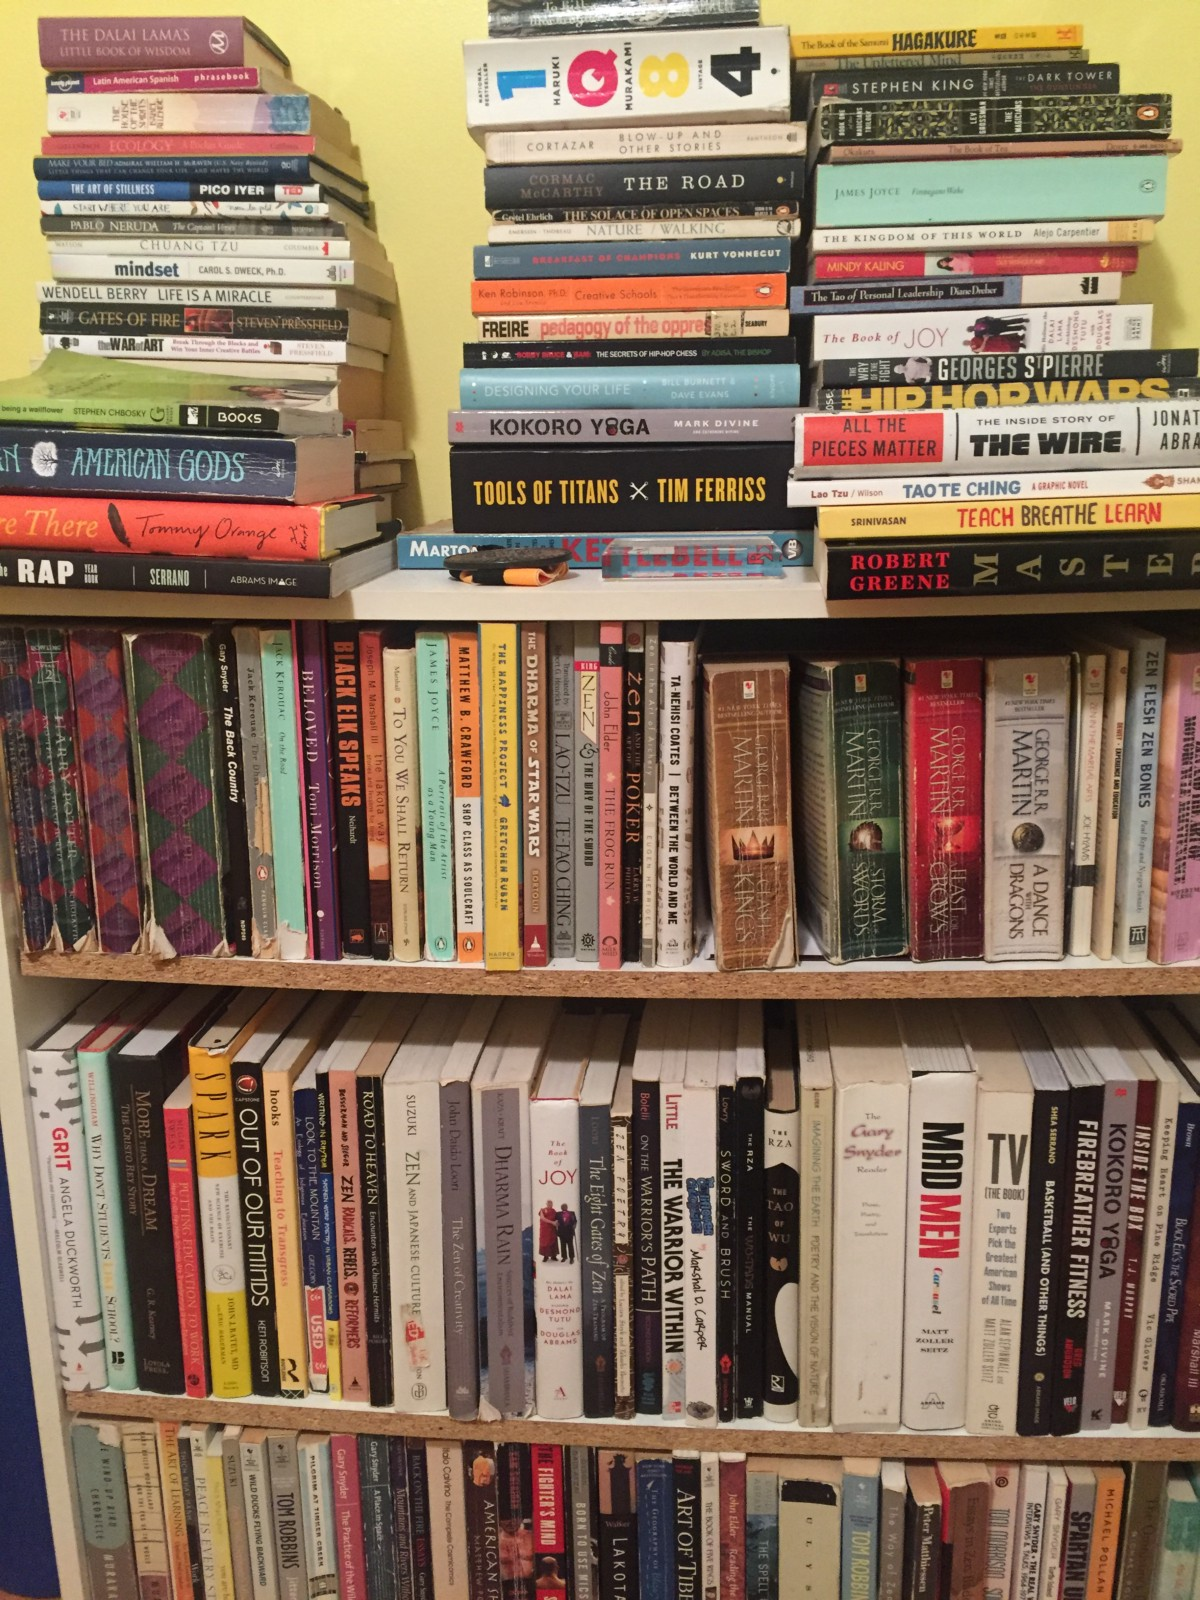 2018: Books, Films, TV, Music, Podcasts, and Languages